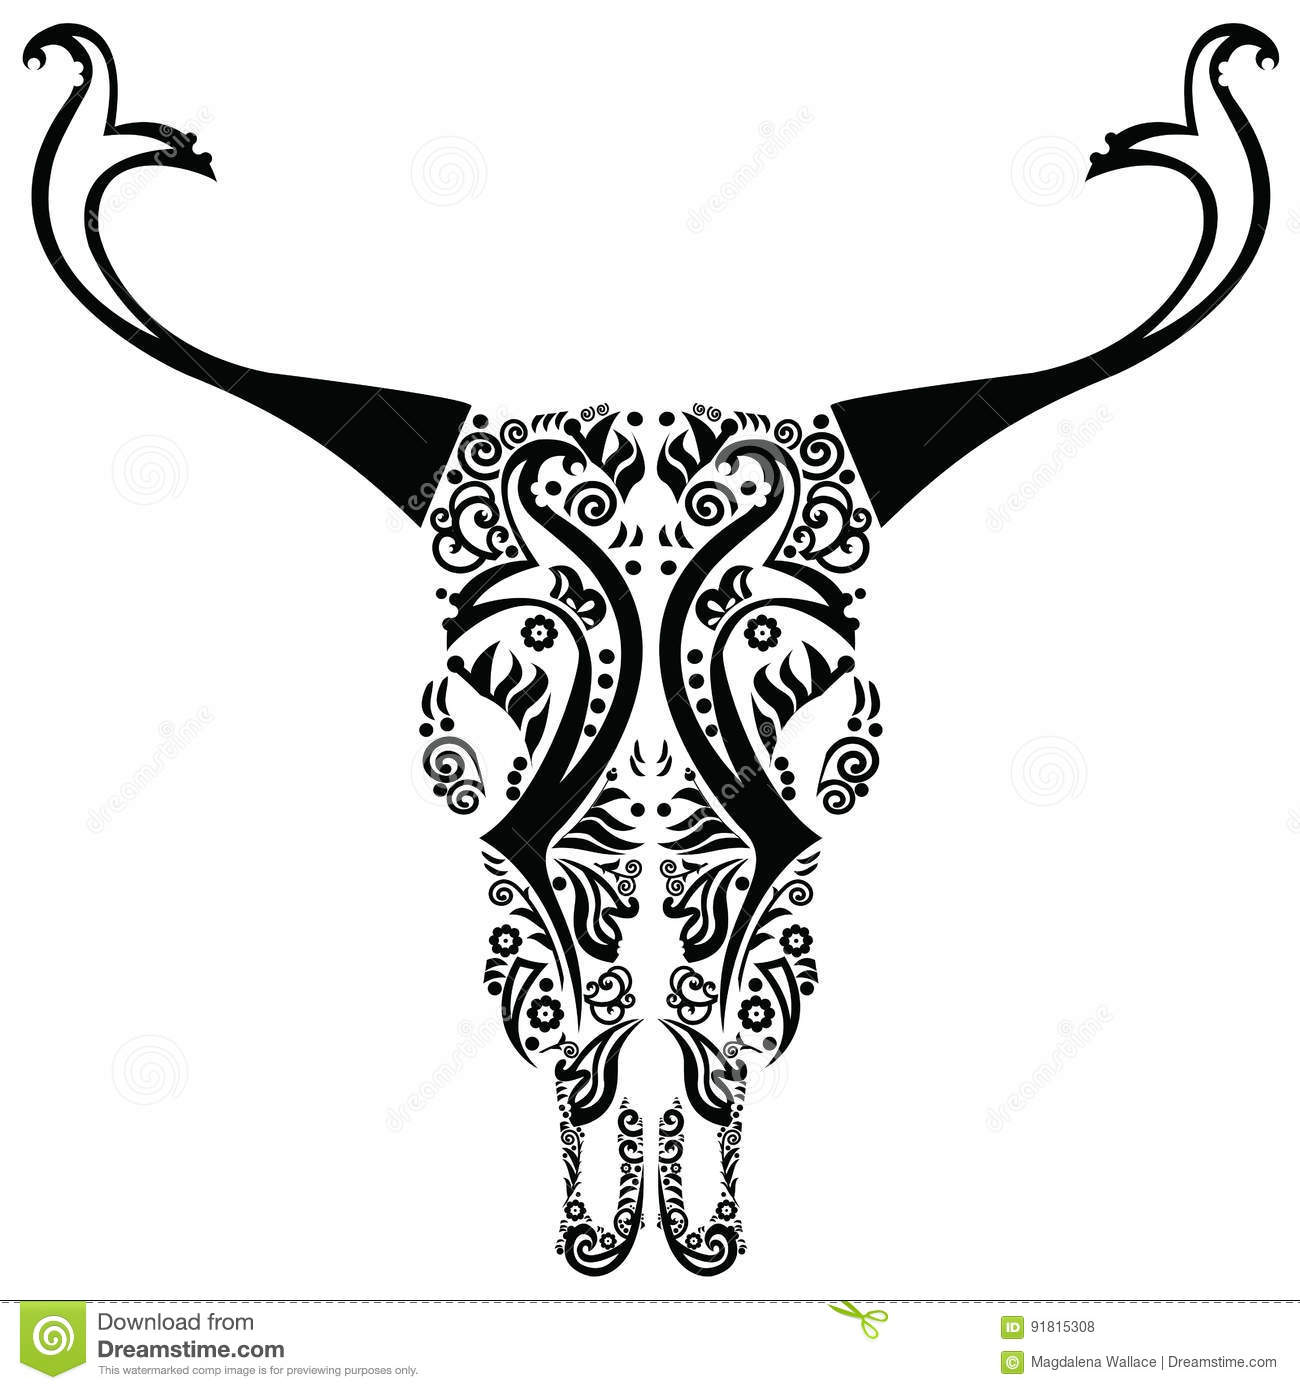 Wild Animal Skull In Black And White With Swirly And Floral Elements